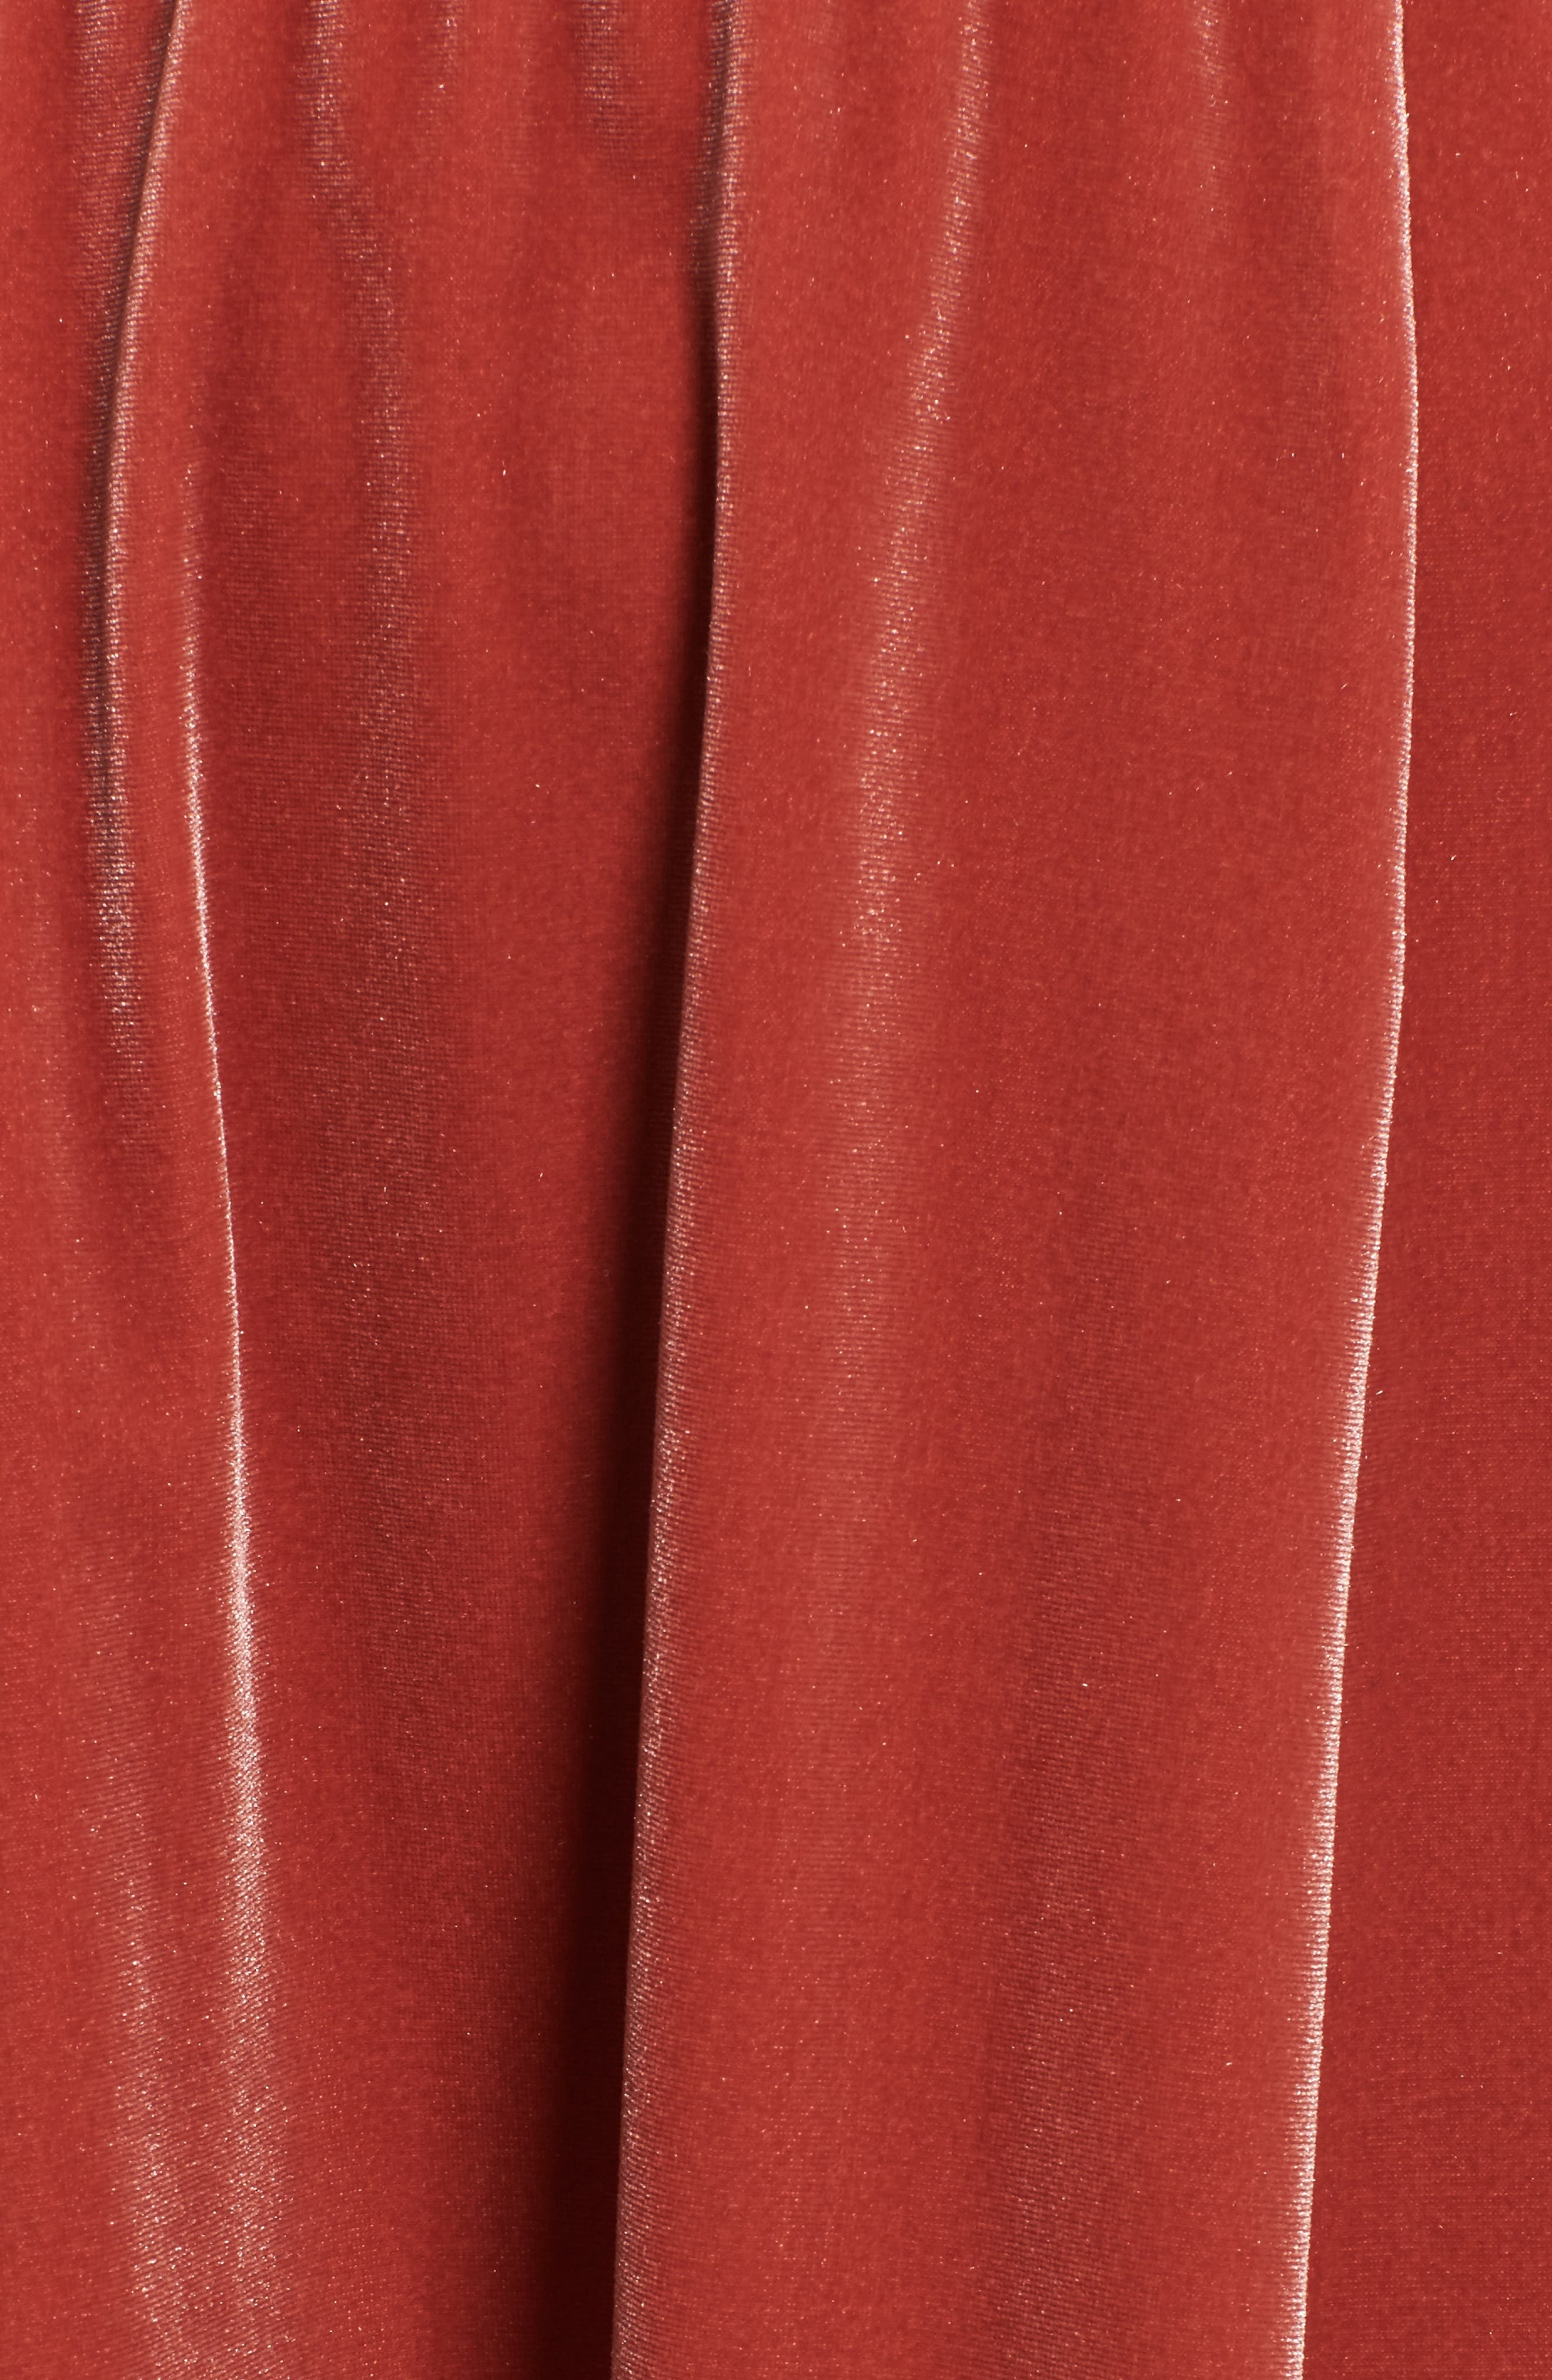 Velvet Midi Dress,                             Alternate thumbnail 5, color,                             Rust Marsala